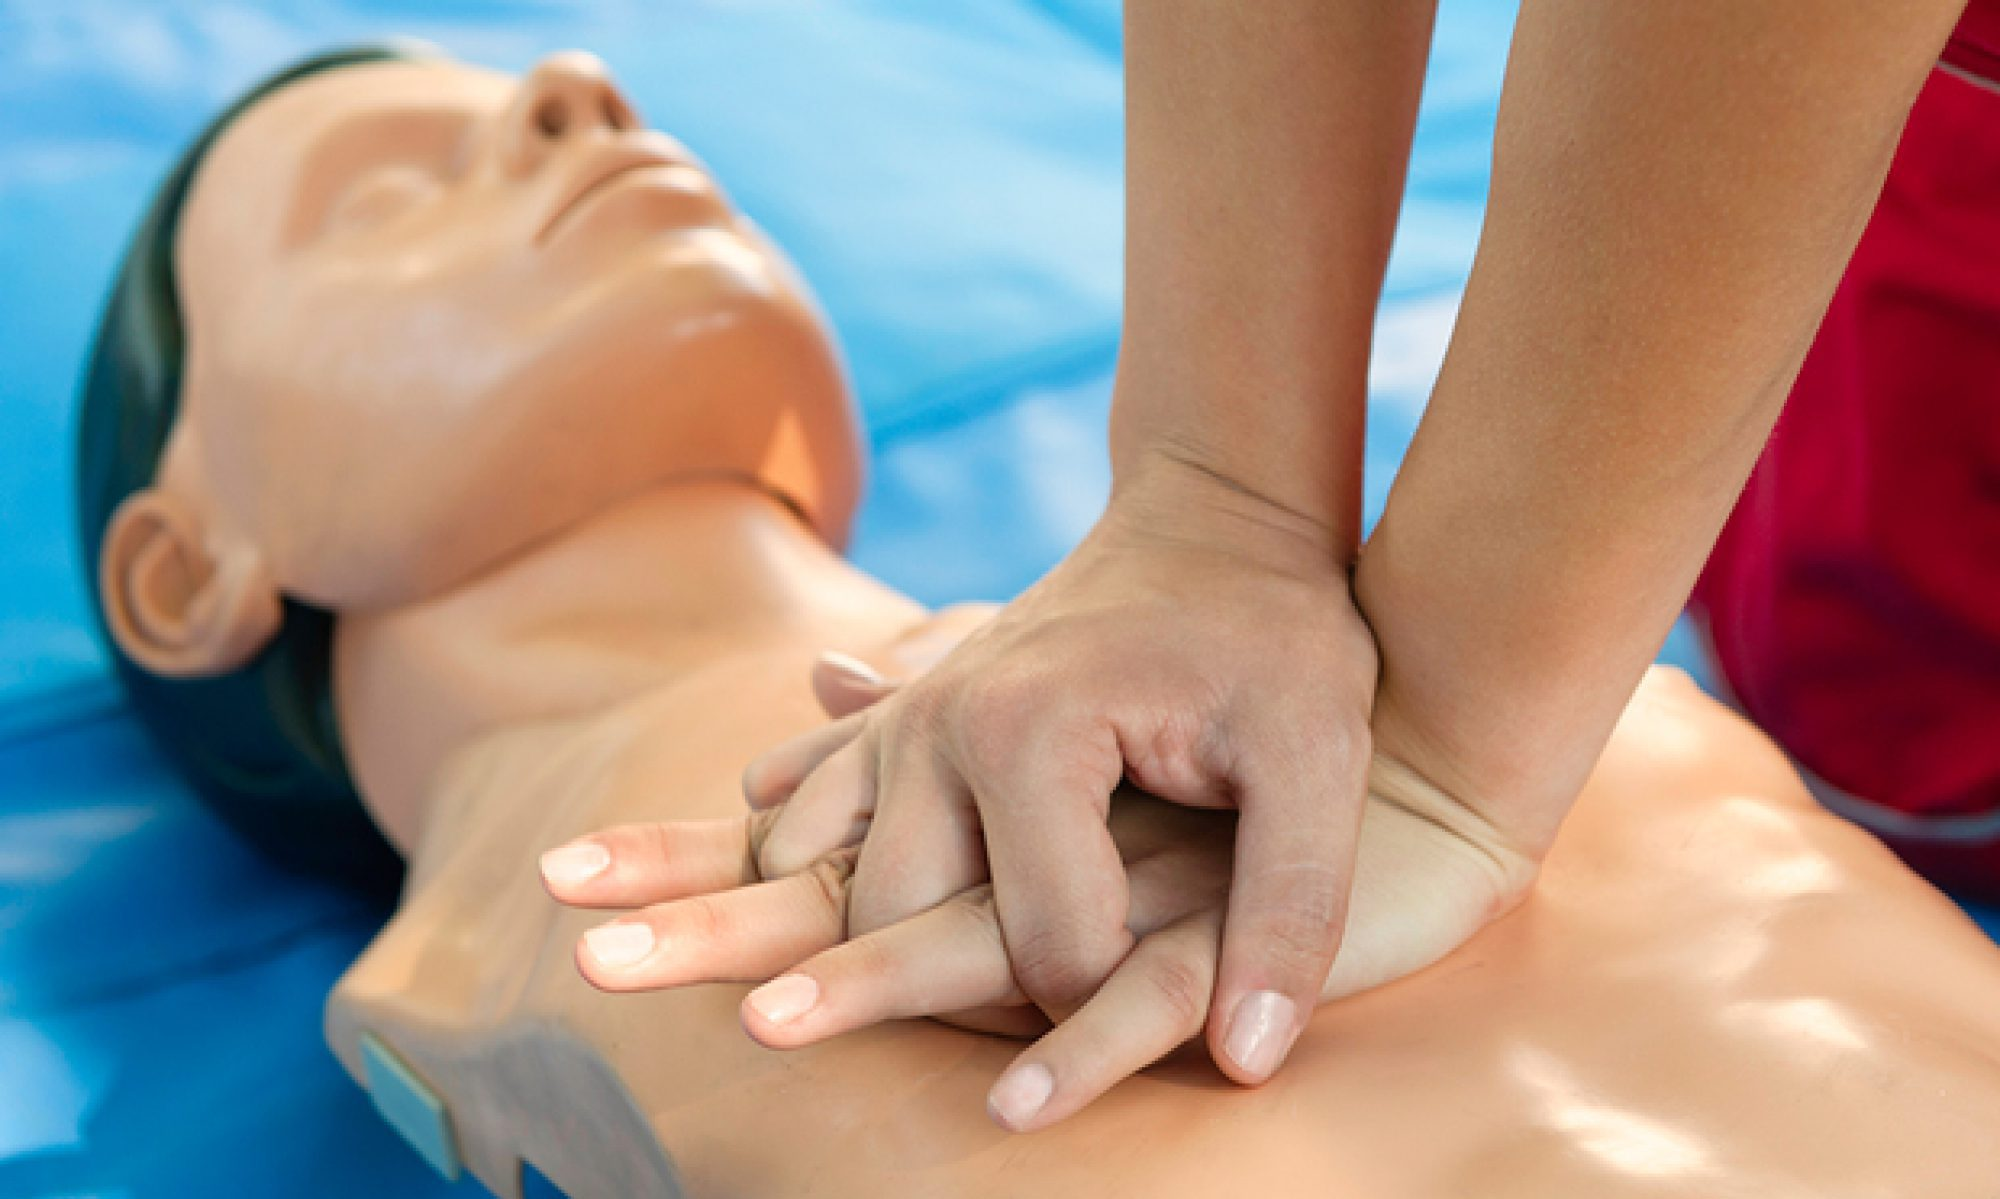 cpr training, first aid training, life saving, medical training, tactical medical